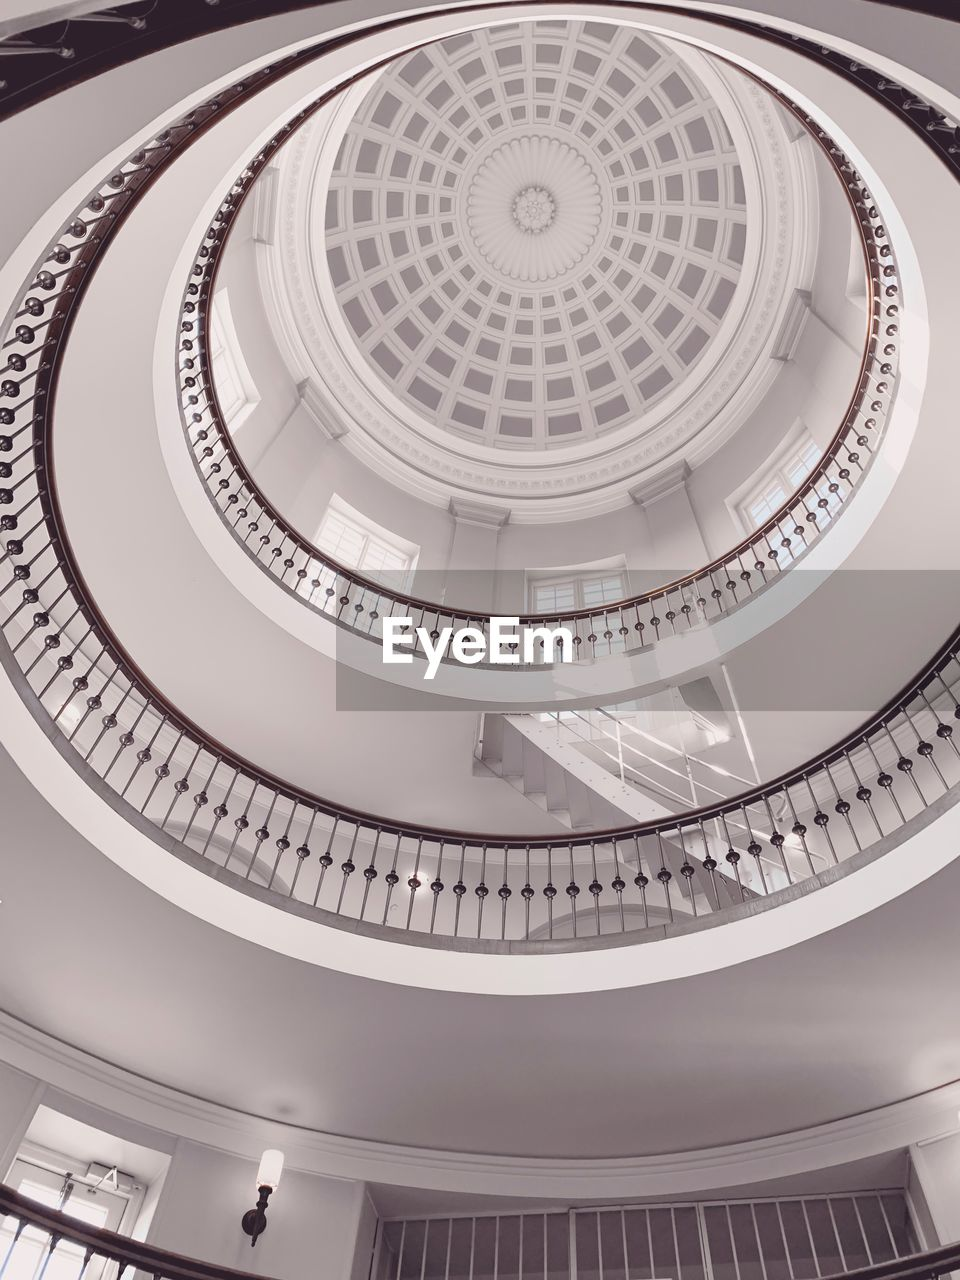 indoors, built structure, architecture, low angle view, ceiling, dome, pattern, no people, shape, architectural feature, spiral, geometric shape, design, staircase, railing, circle, sunlight, spiral staircase, cupola, directly below, ornate, architecture and art